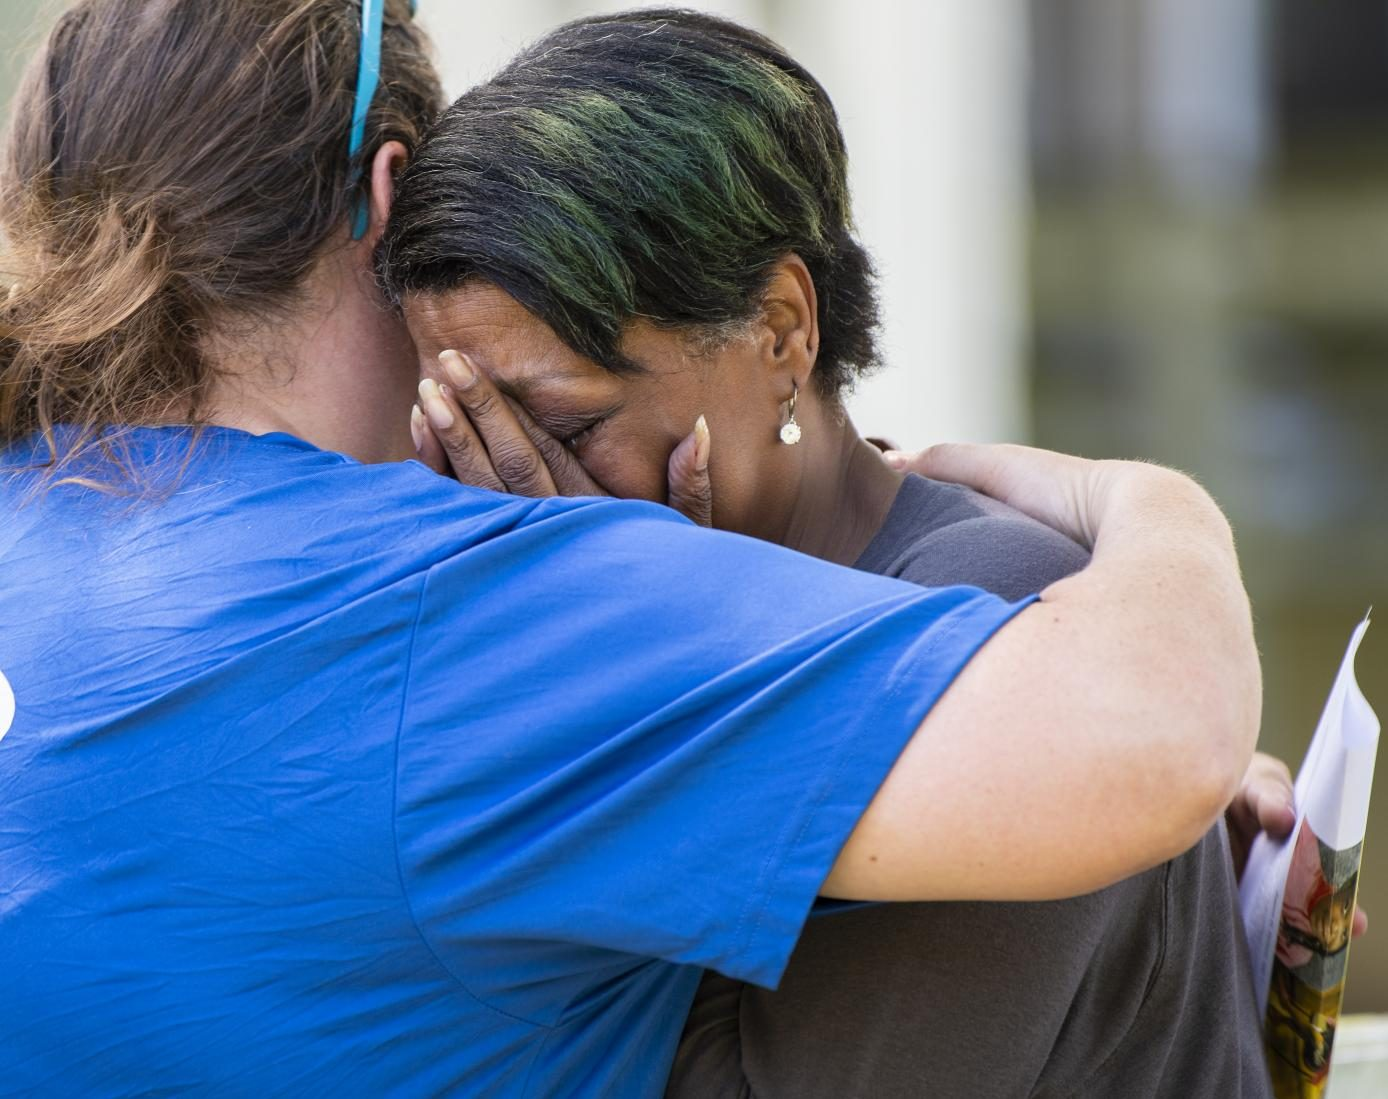 Patrice's grandmother Barbra Dotson shows emotion on Tuesday, June 11, 2019 on the corner of Rawlings Street and Cherry Street. Dotson came from Chicago to help look for her youngest grandchild